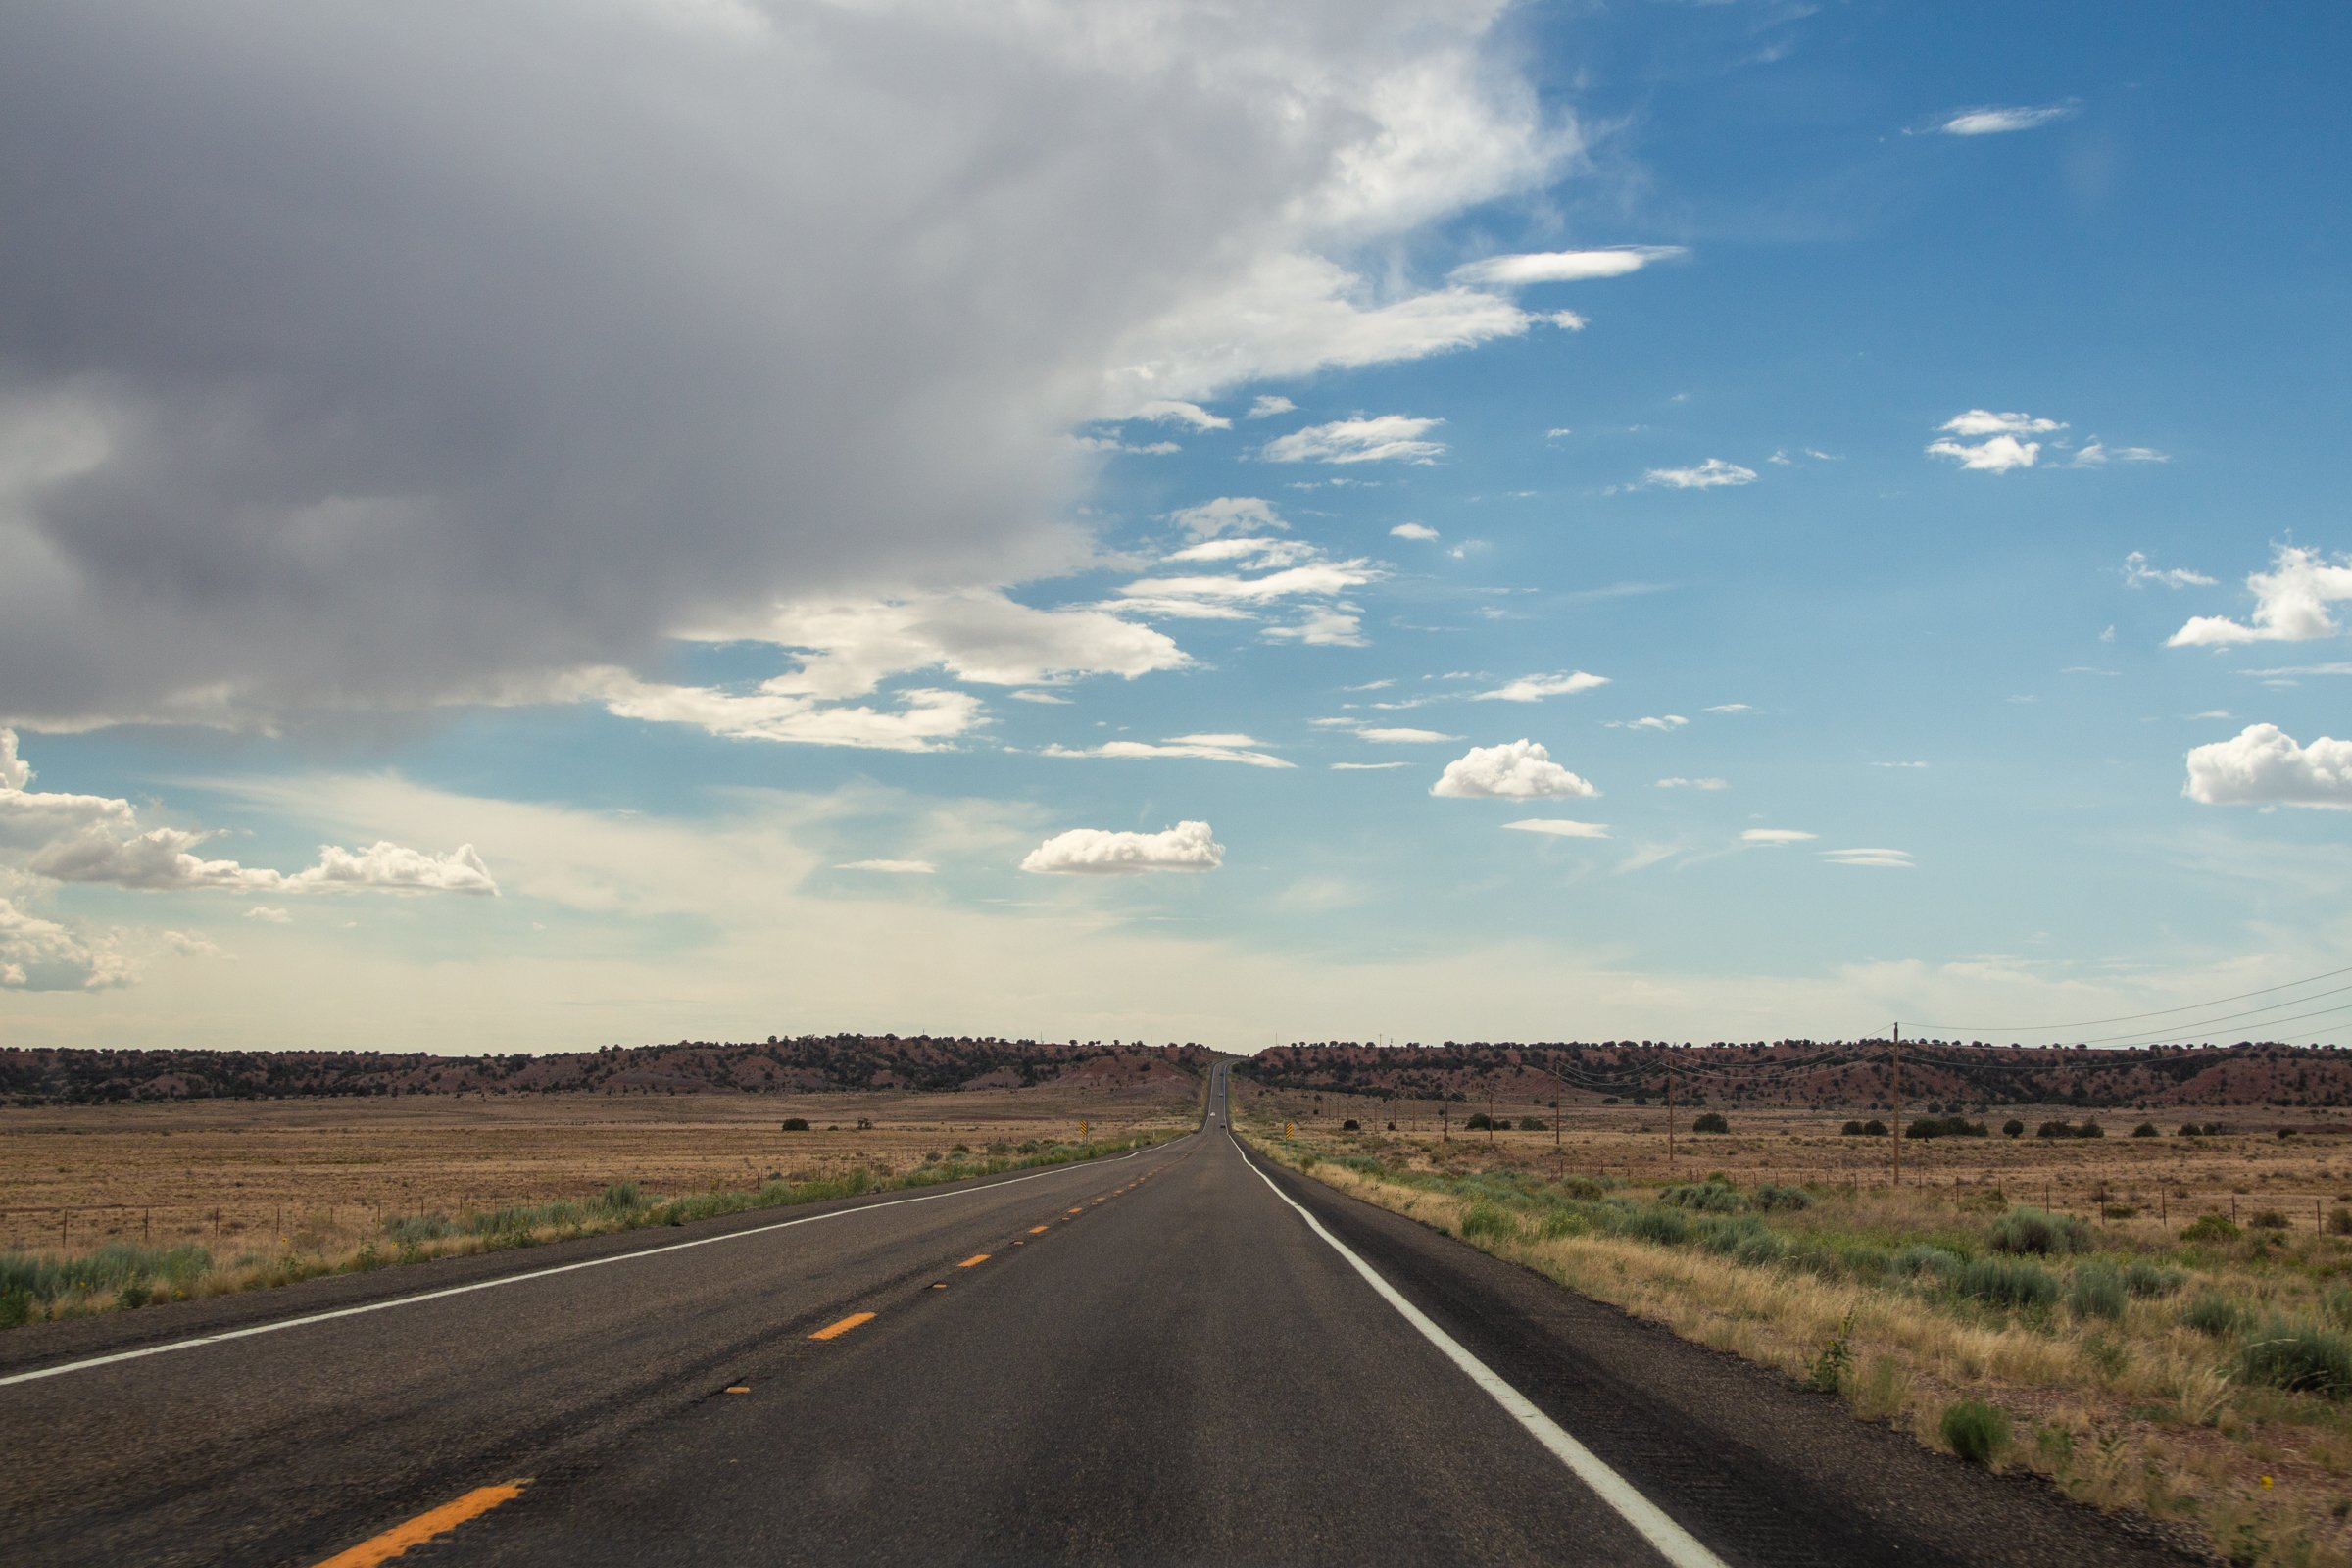 Empty Highway In Desert Under Cloudy Blue Sky